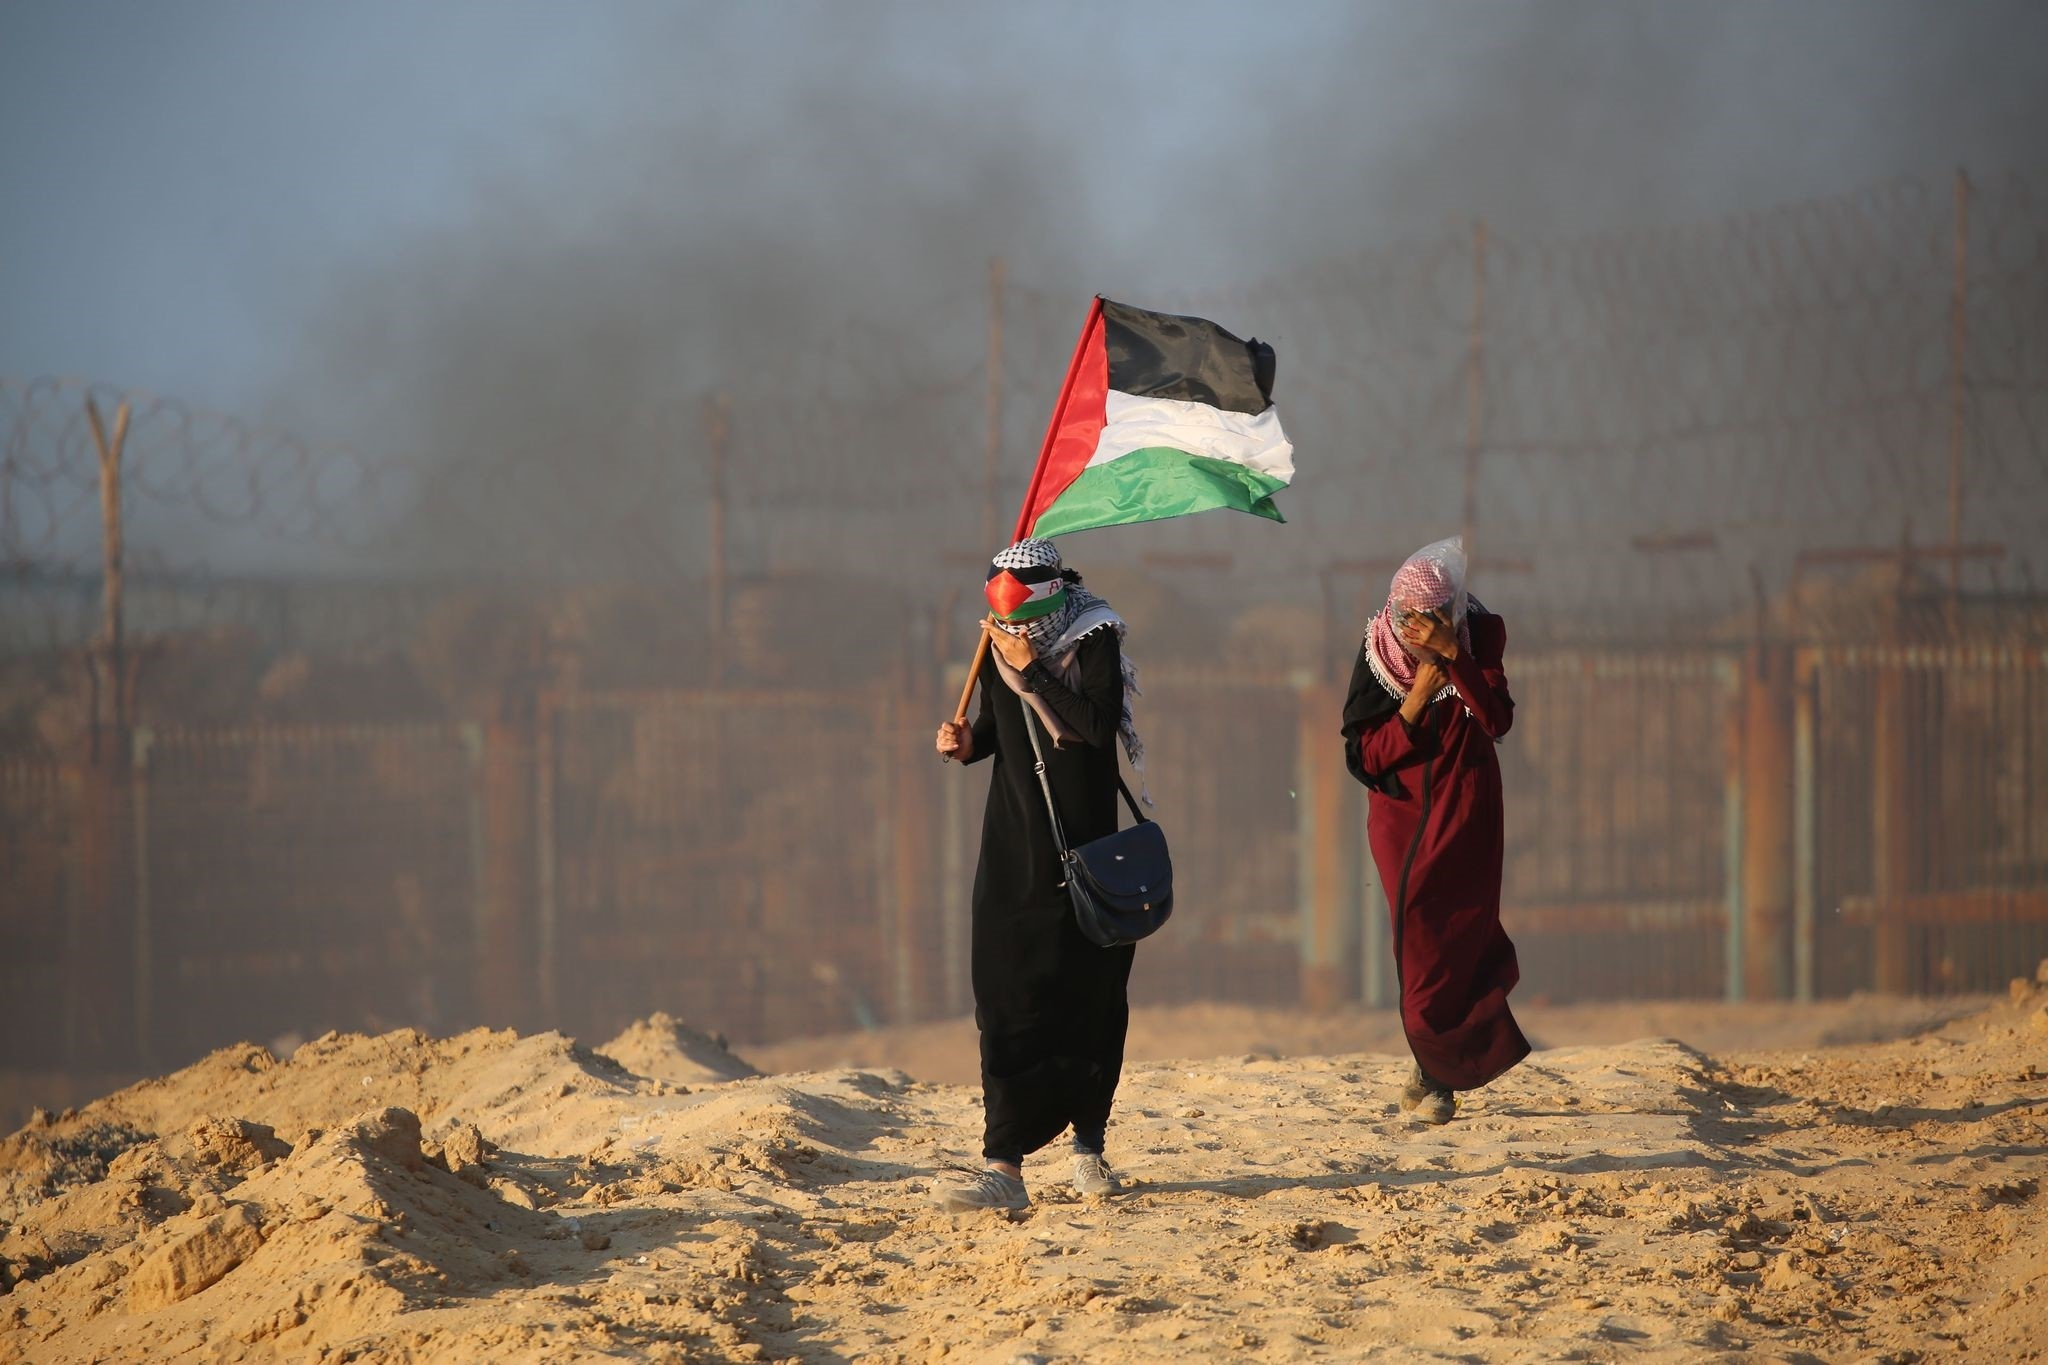 A Palestinian woman carries her national flag on a beach in Beit Lahia near the maritime border with Israel, Sept. 17.